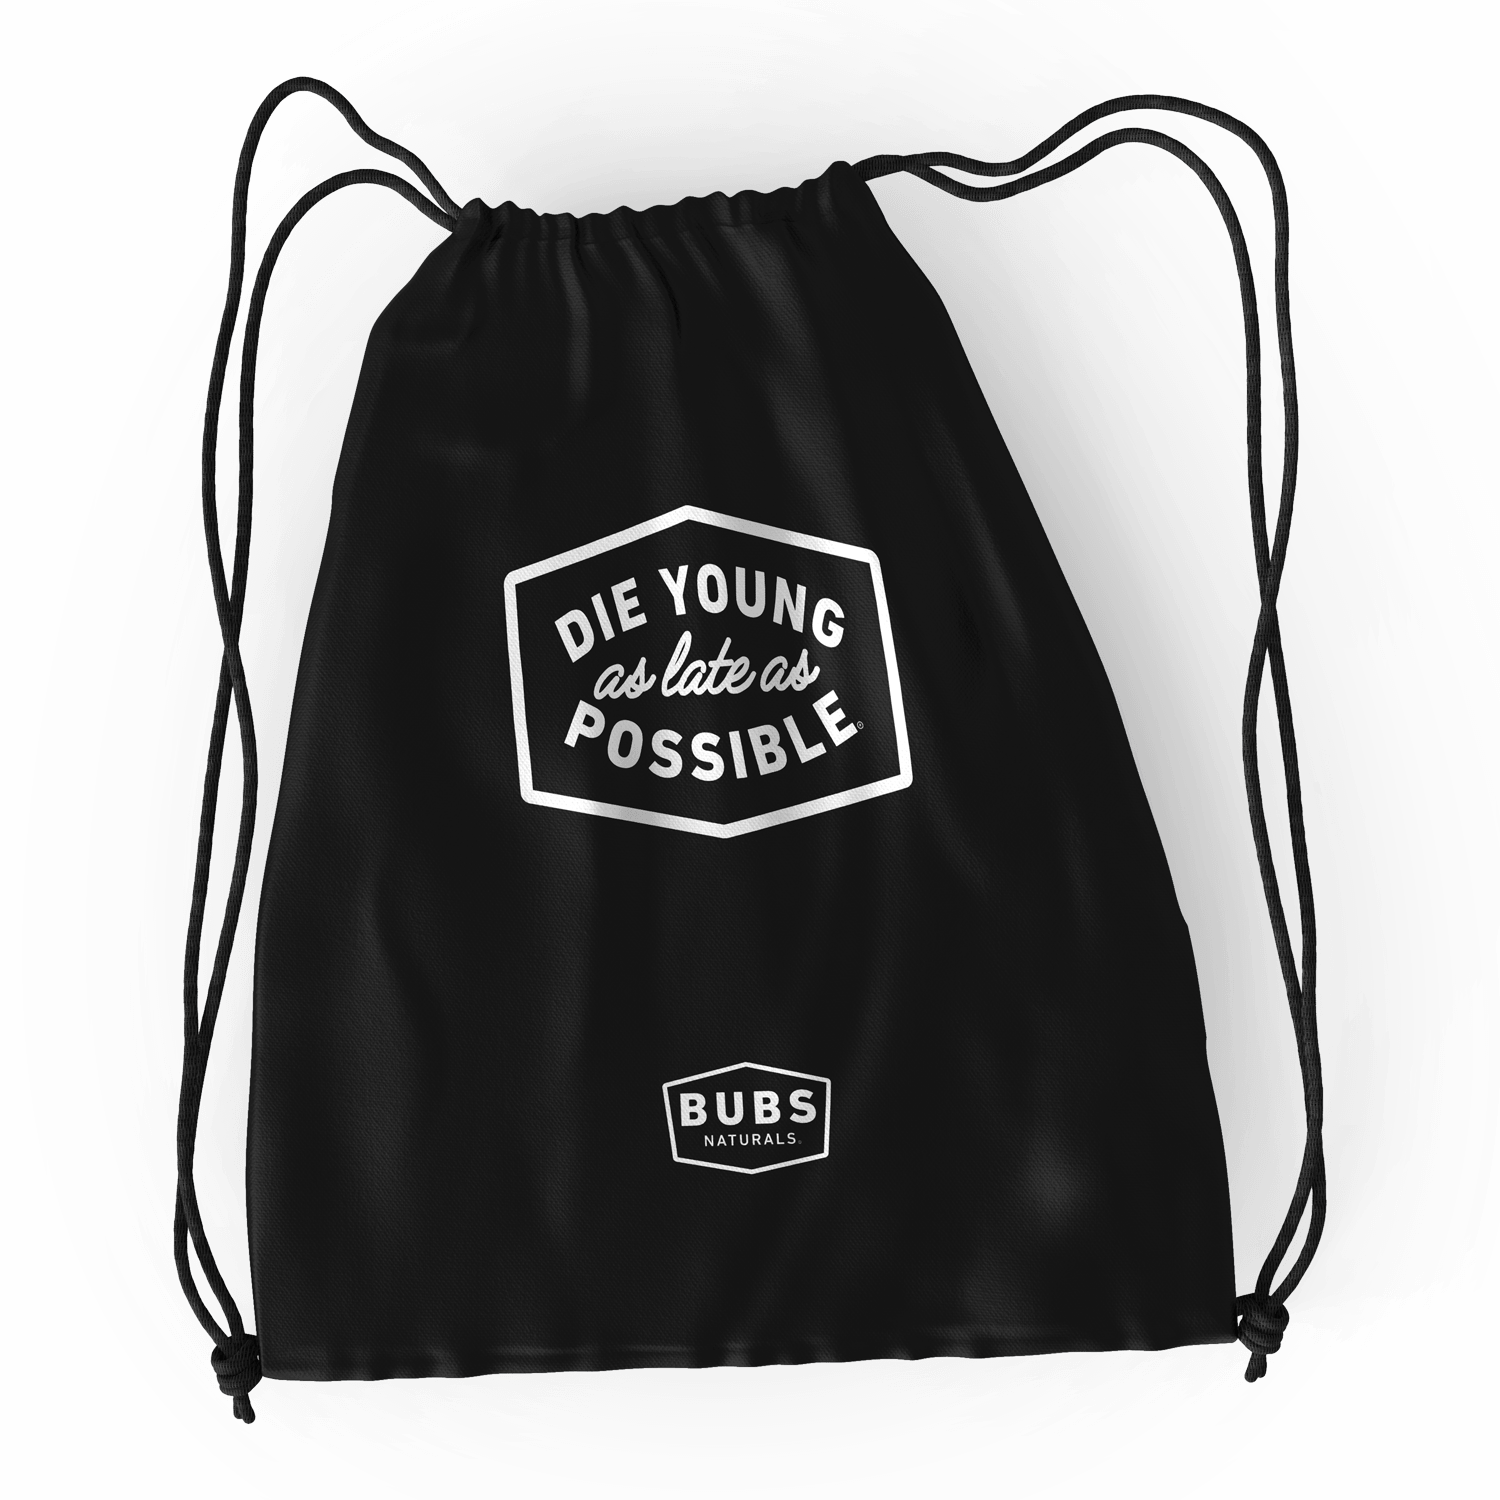 black drawstring bag with 'Die Young as late as Possible' slogan and BUBS Naturals logo on the front